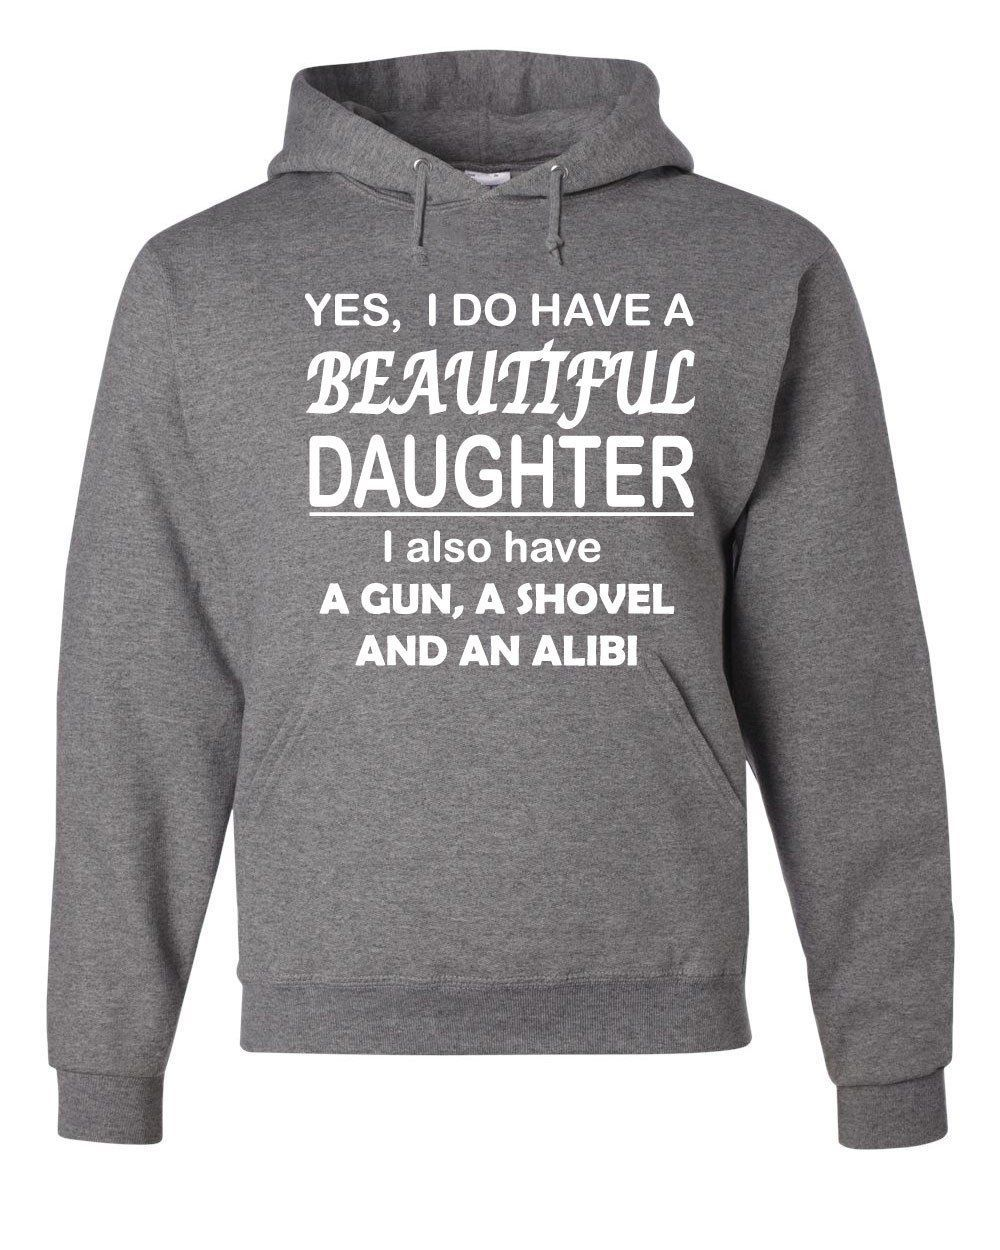 Funny Tshirt Shout Out To My Parents For Not Using A Condom